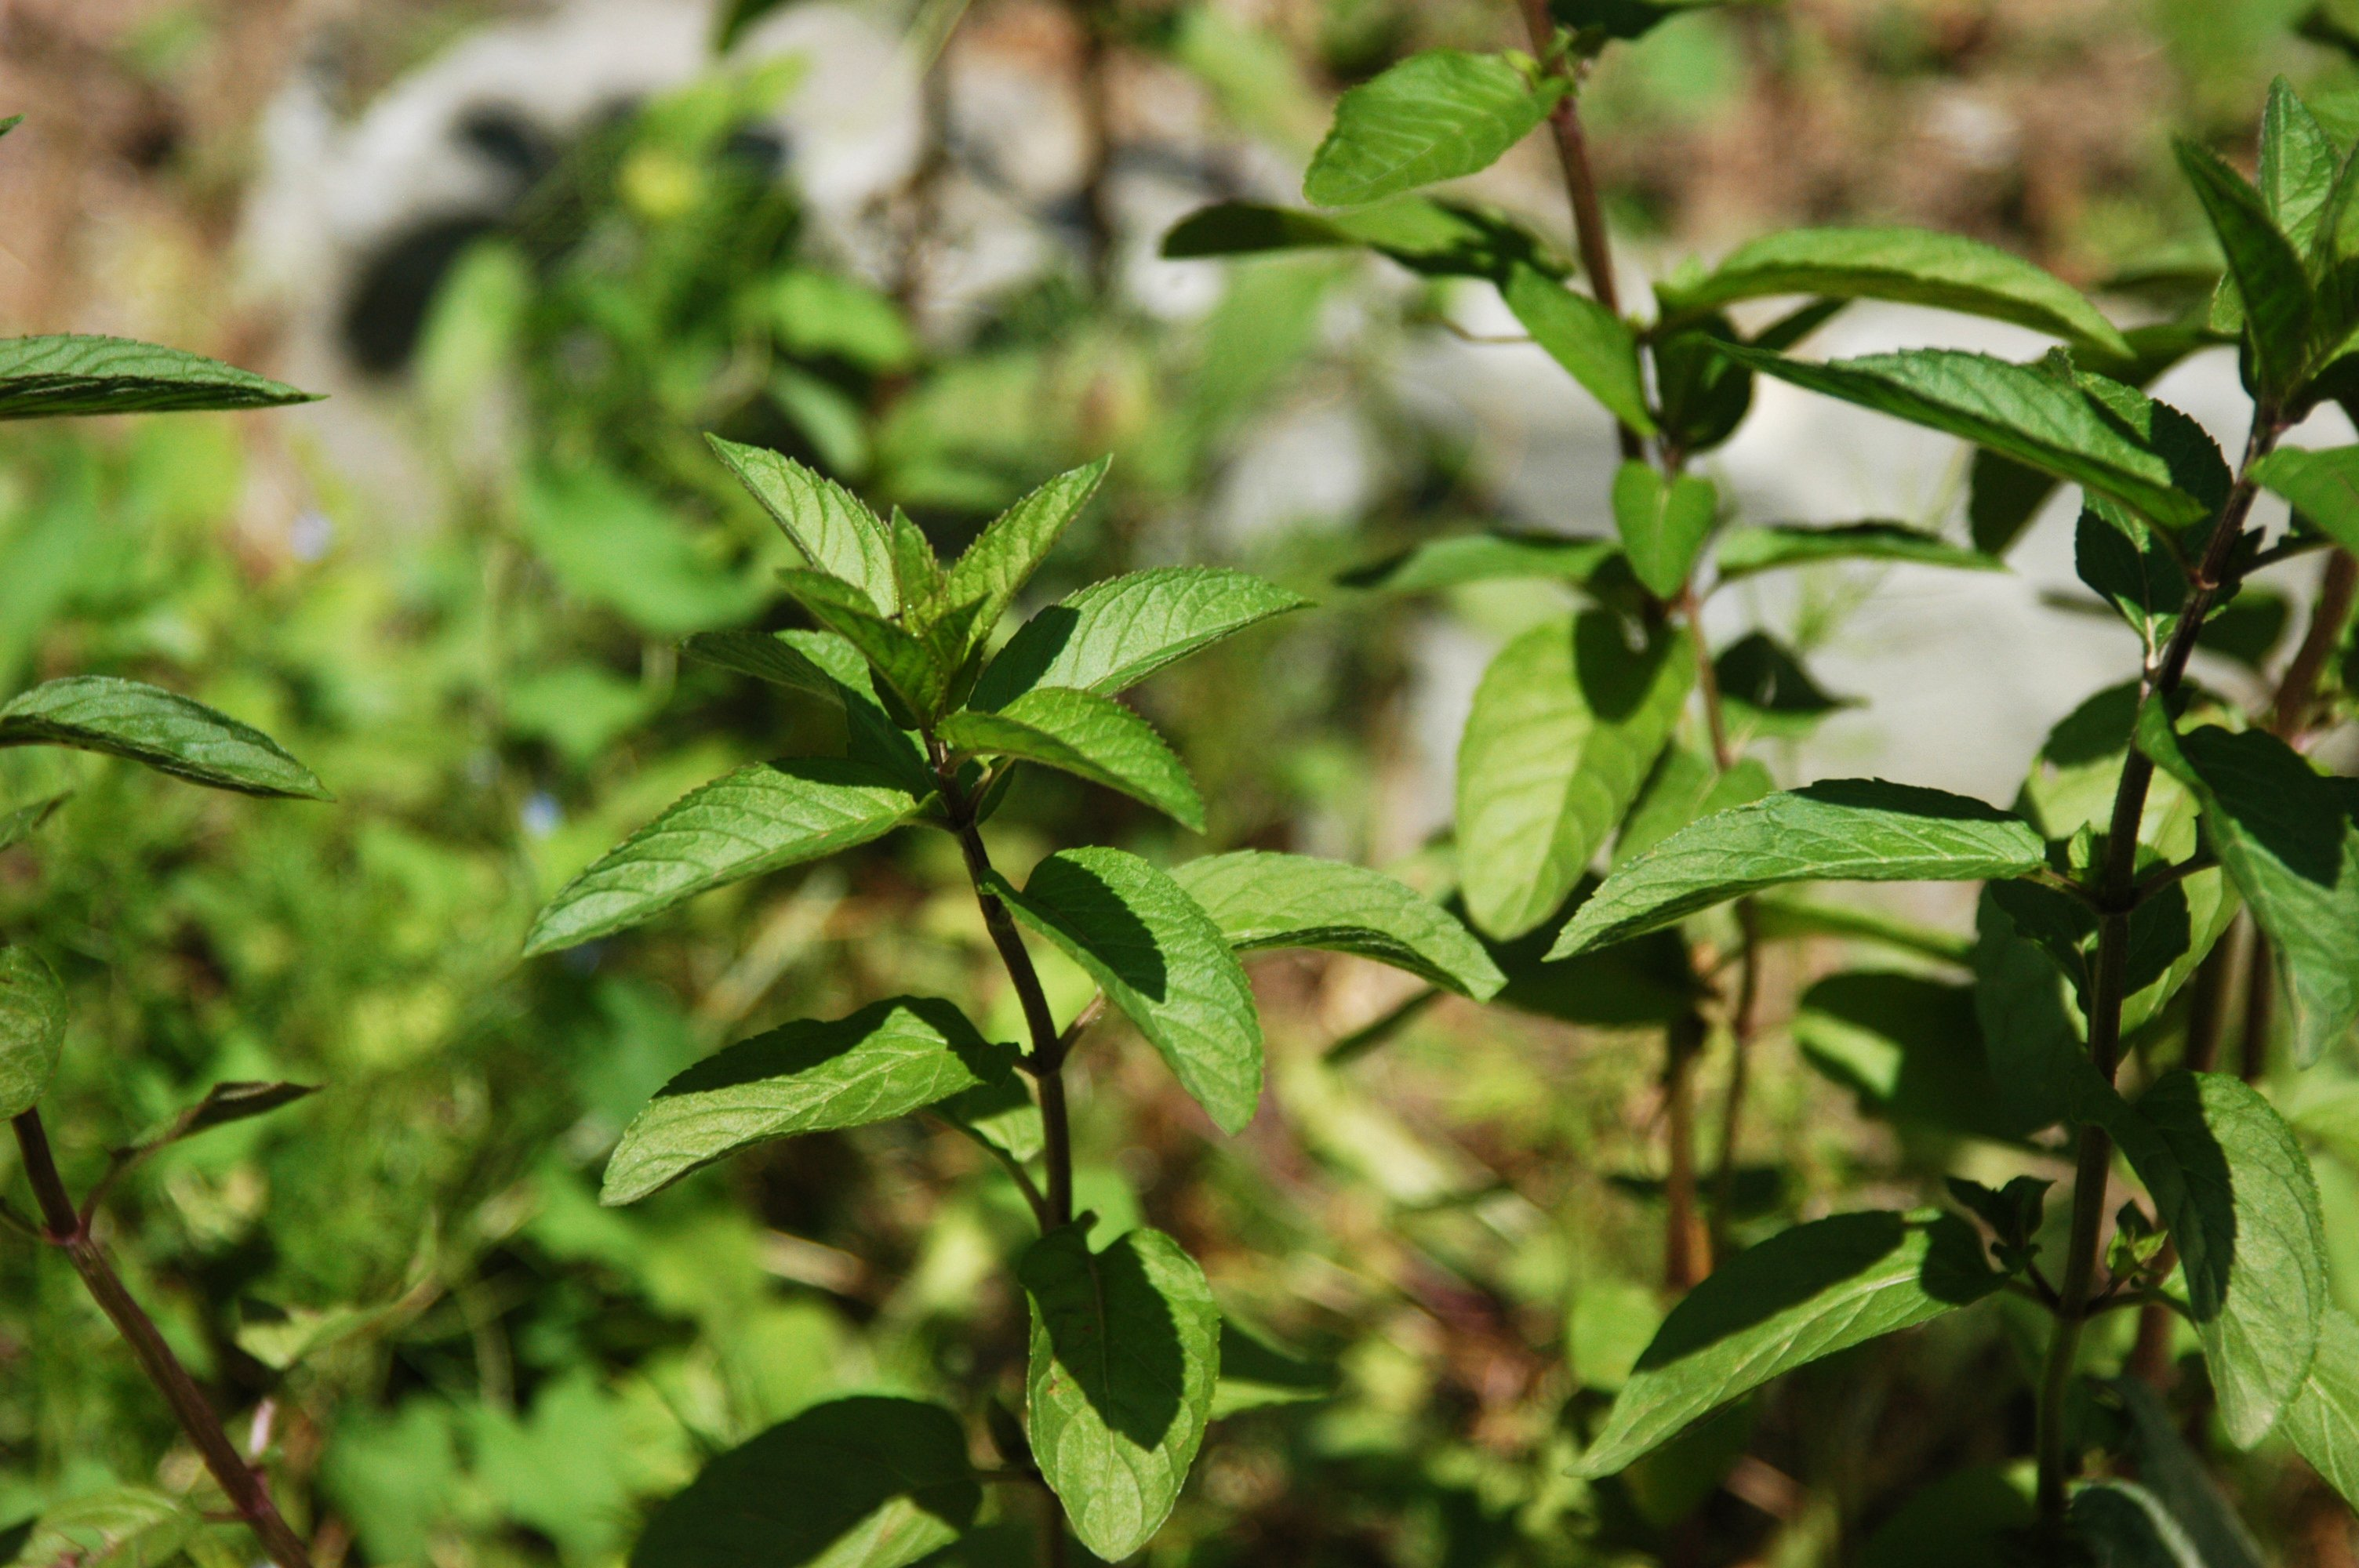 WholeDude - WholeDesigner - WholeMagic: Mentha piperita known for its aromatic, fragrant foliage.